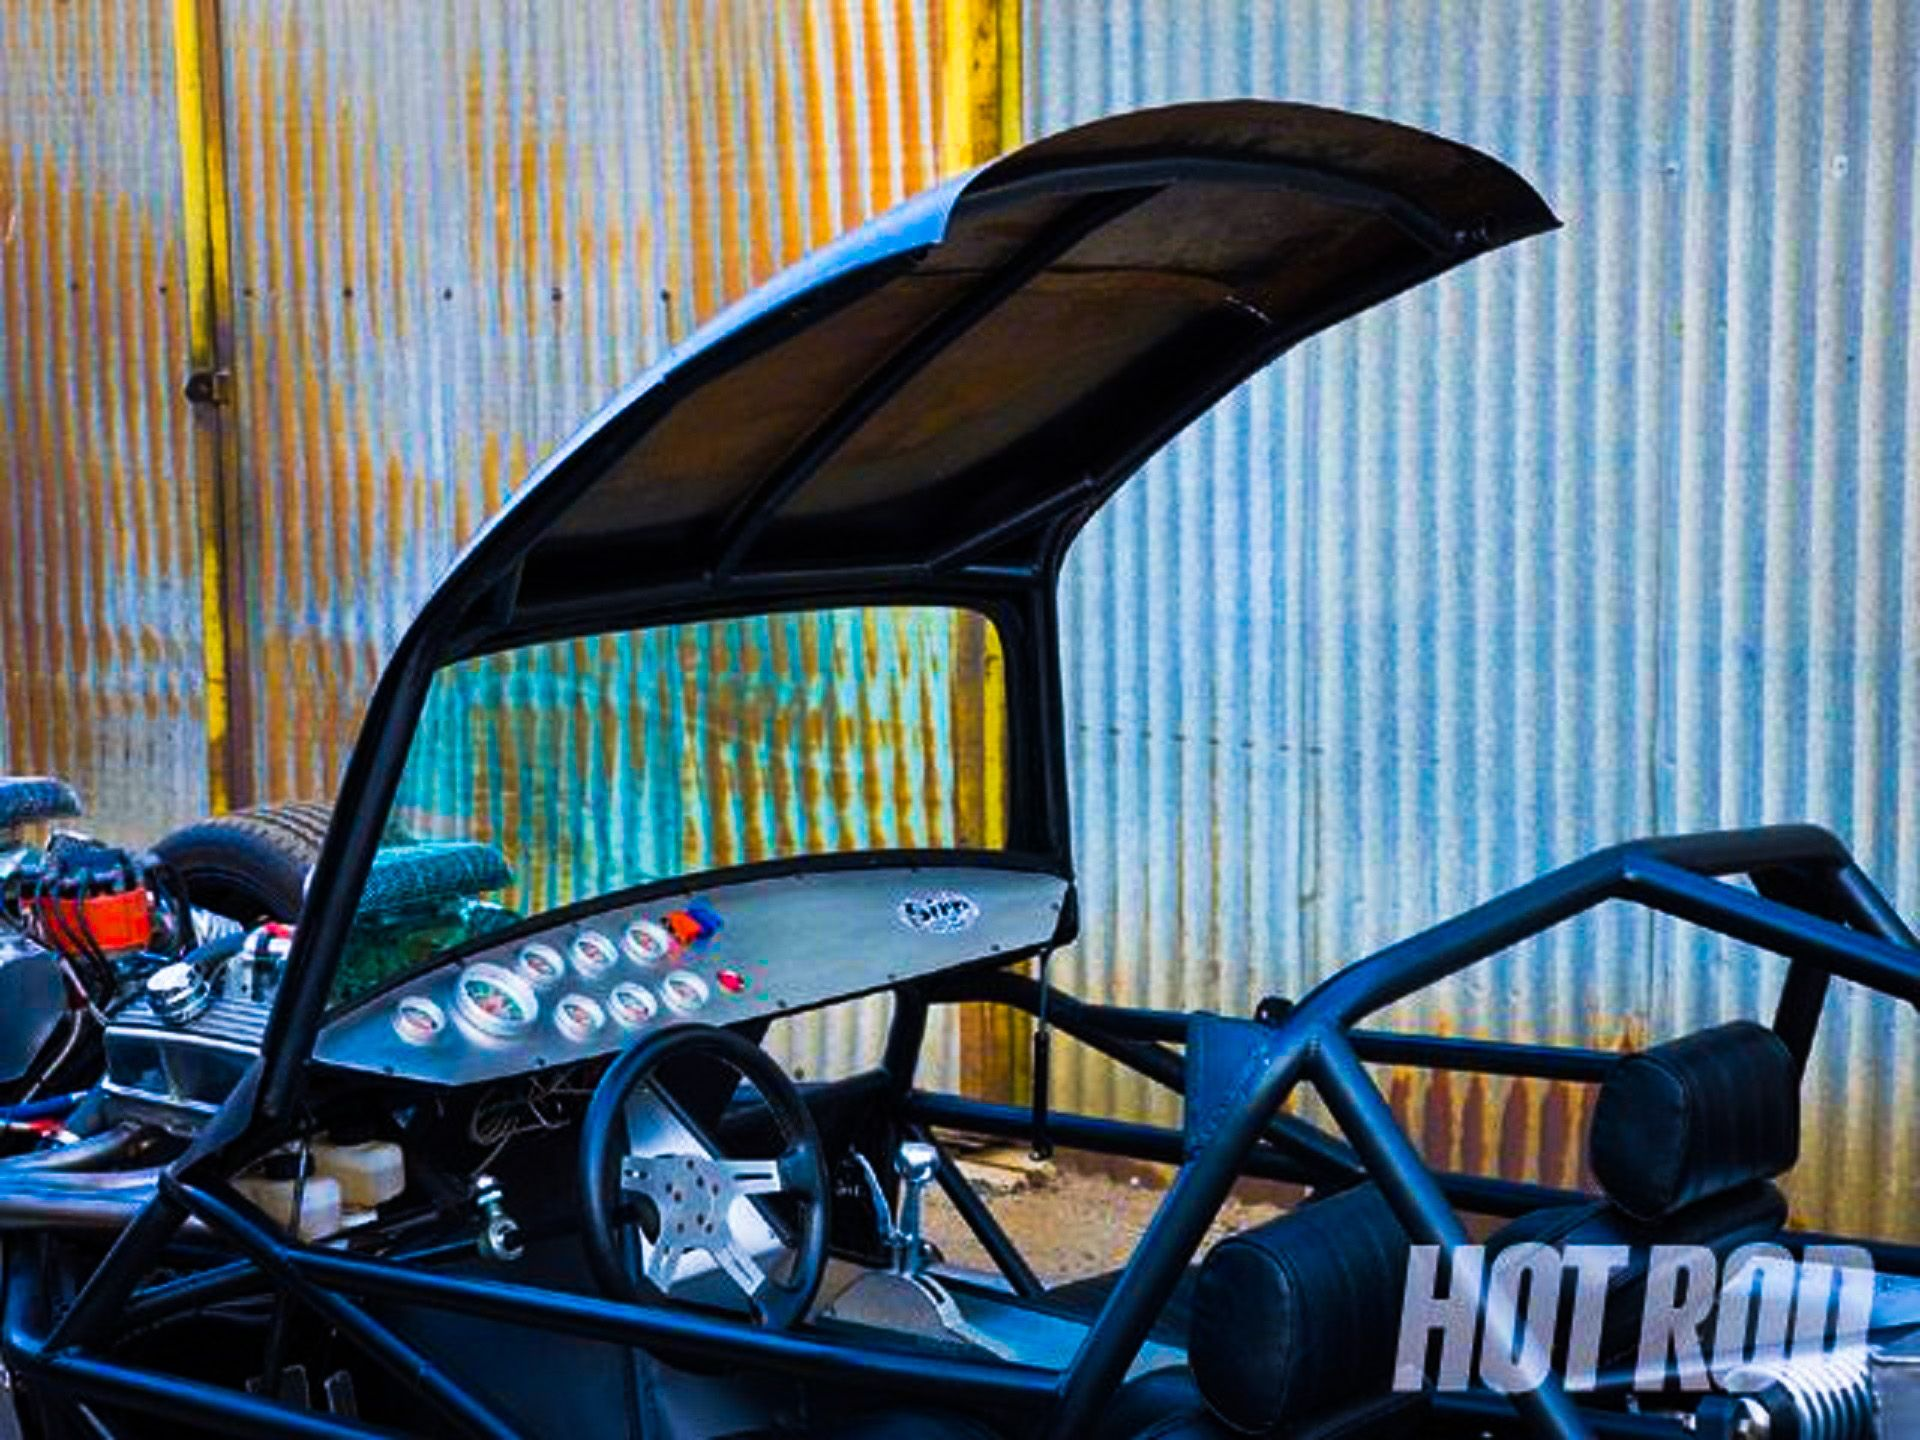 """The Priapism"" V16 Hot Rod Custom Speed Buggy (Flip Top Roof).    http://sirecustomperformance.com/Sire.html and/or http://hotrod.com/cars/featured/hrdp-0909-custom-speed-buggy/"